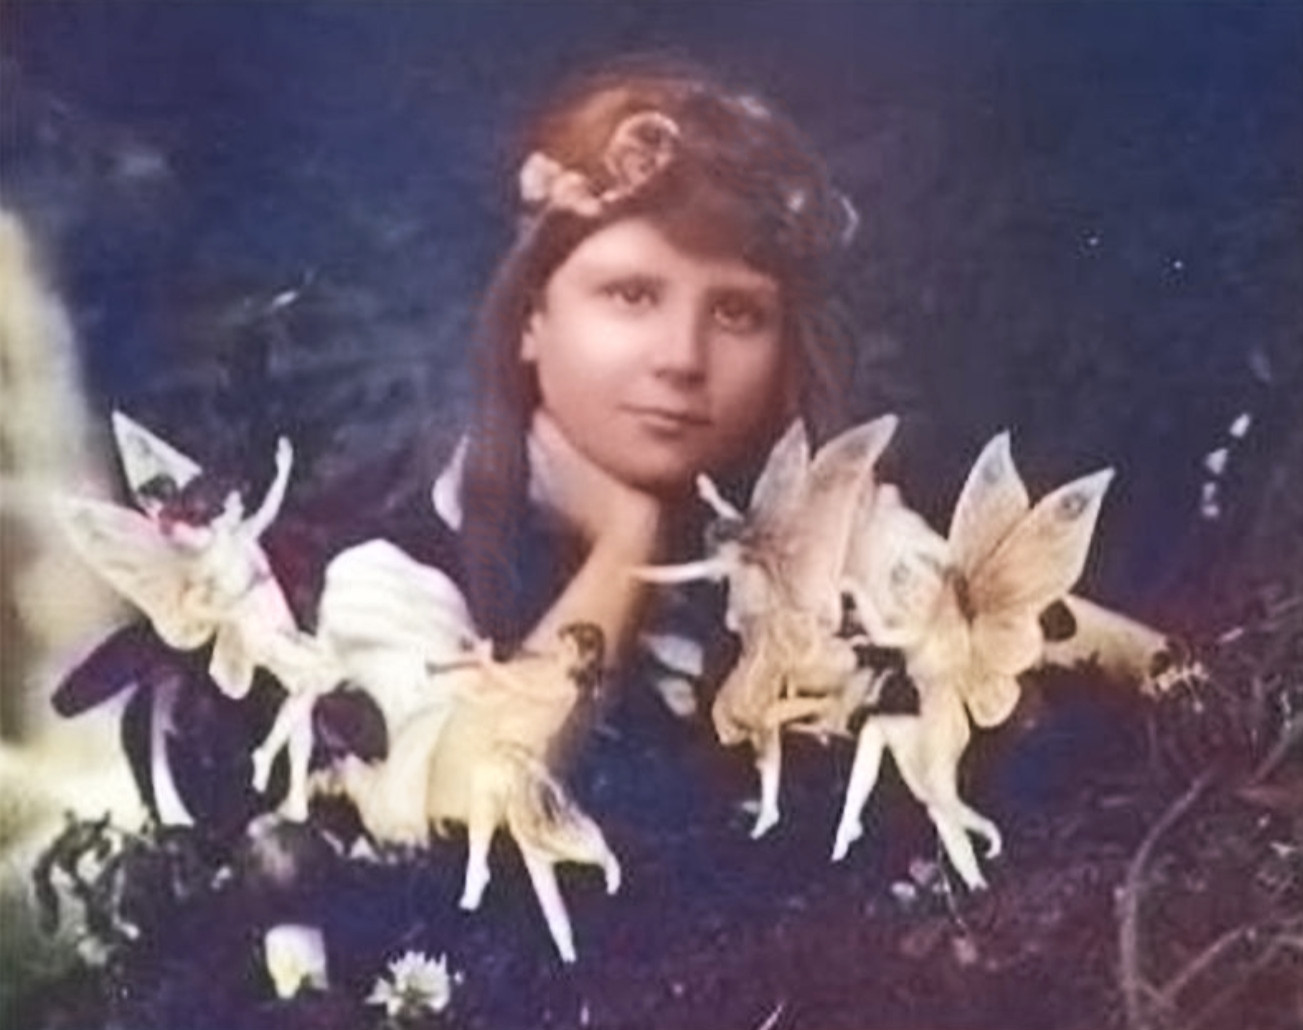 Cottingley Fairies by Elsie Wright, 1917